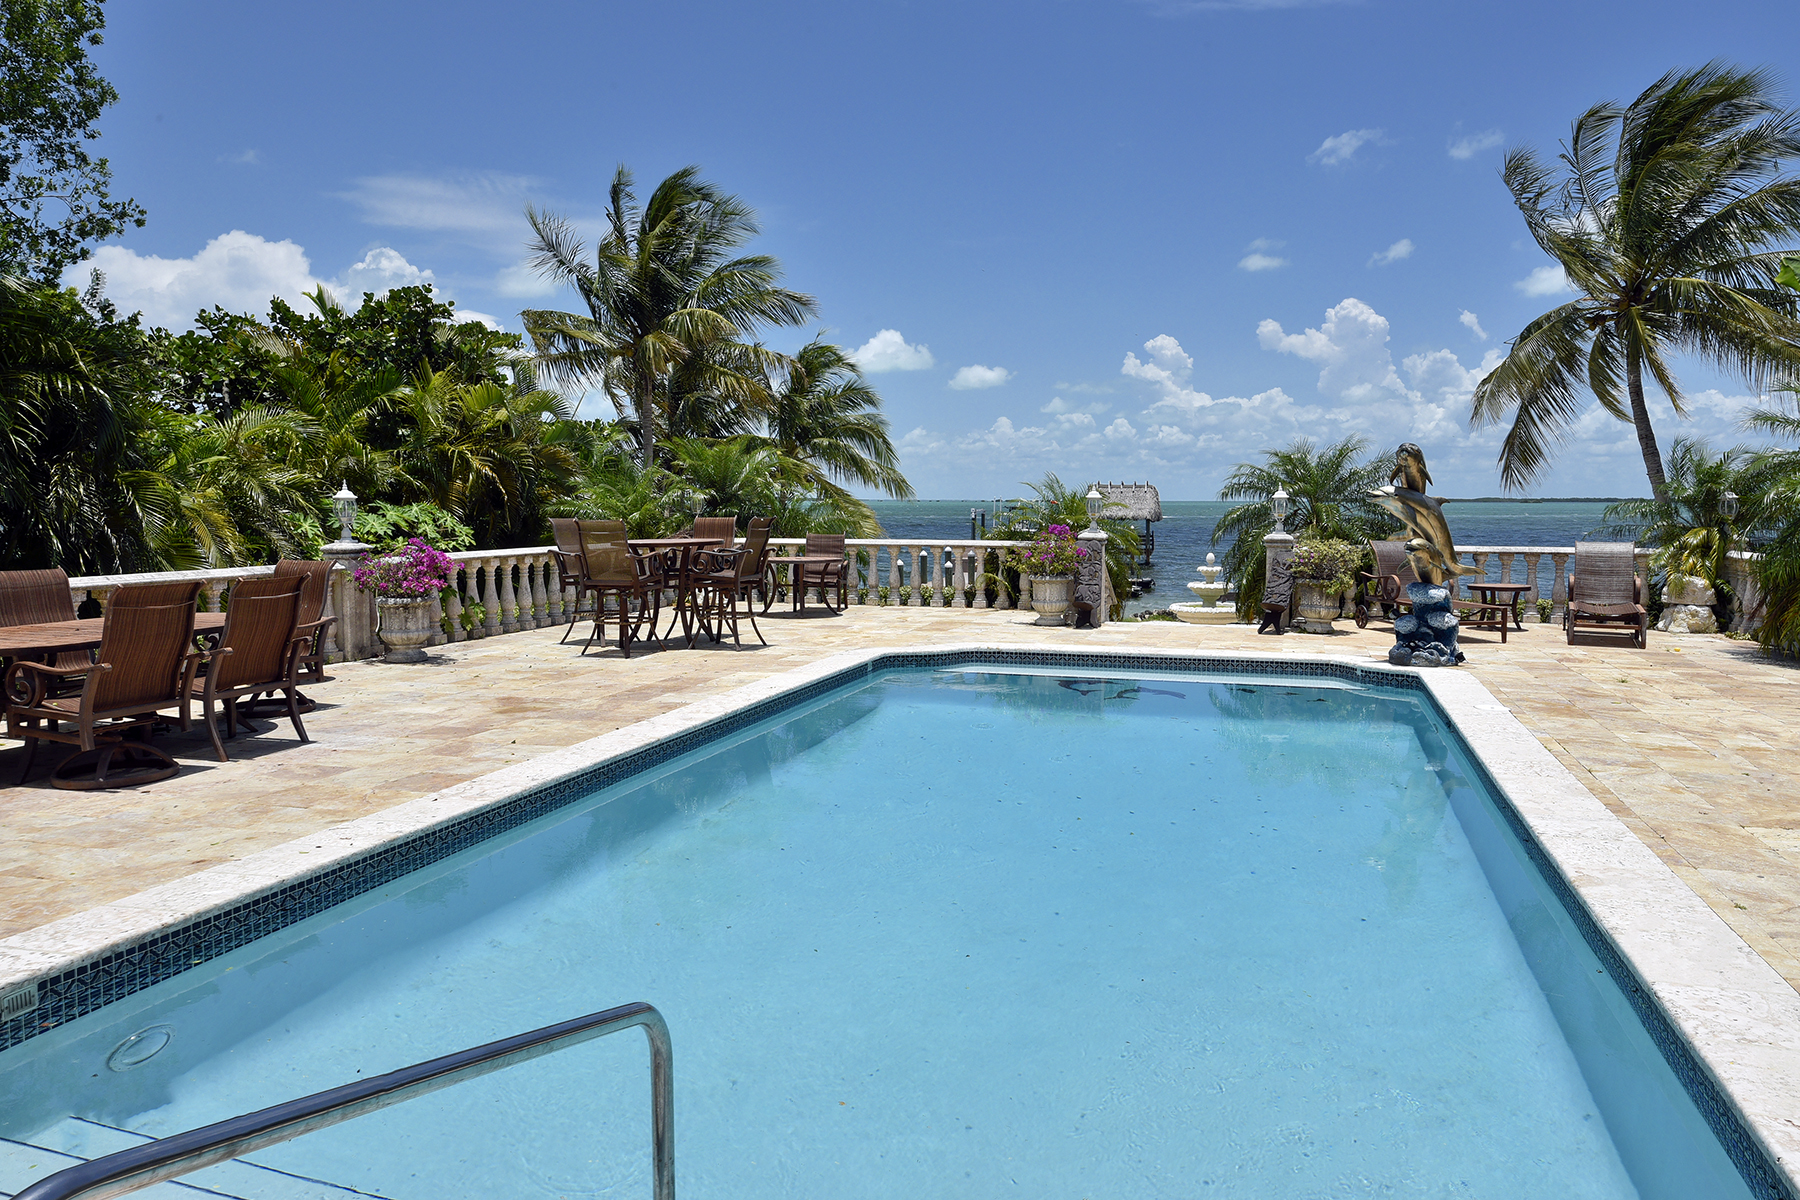 Casa Unifamiliar por un Venta en Elegance on the Bay 97240 Overseas Highway Key Largo, Florida, 33037 Estados Unidos